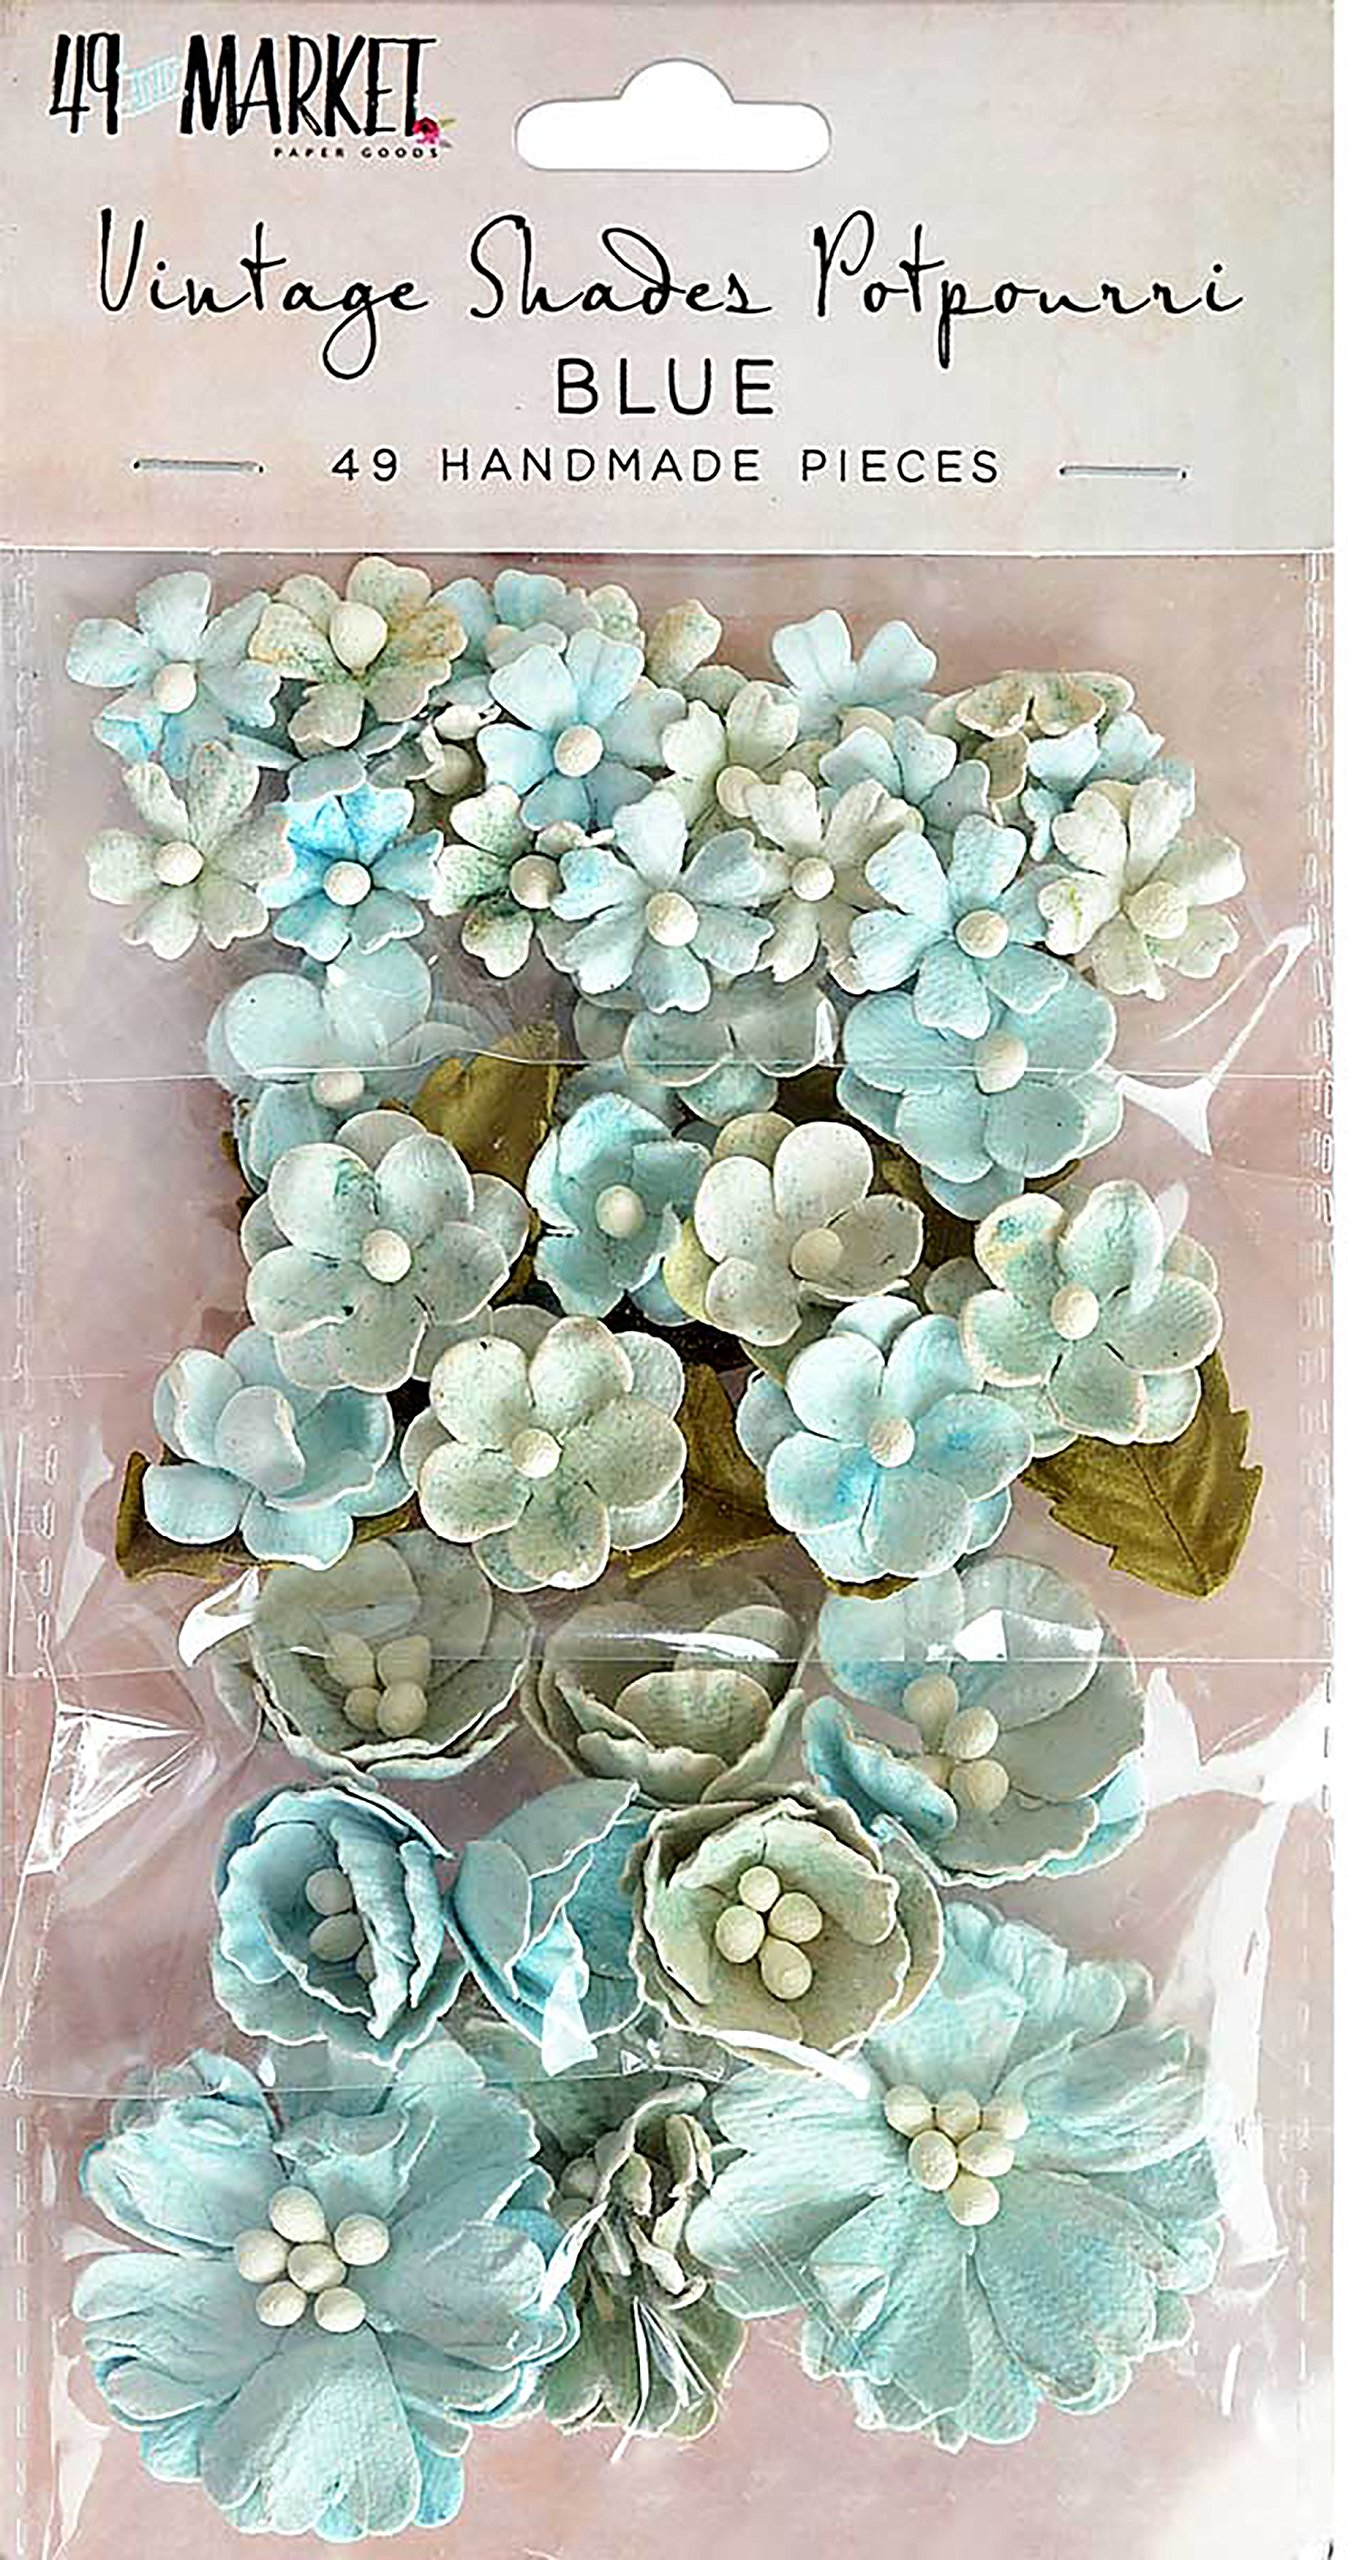 49 And Market Vintage Shades Potpourri 49/pkg-blue